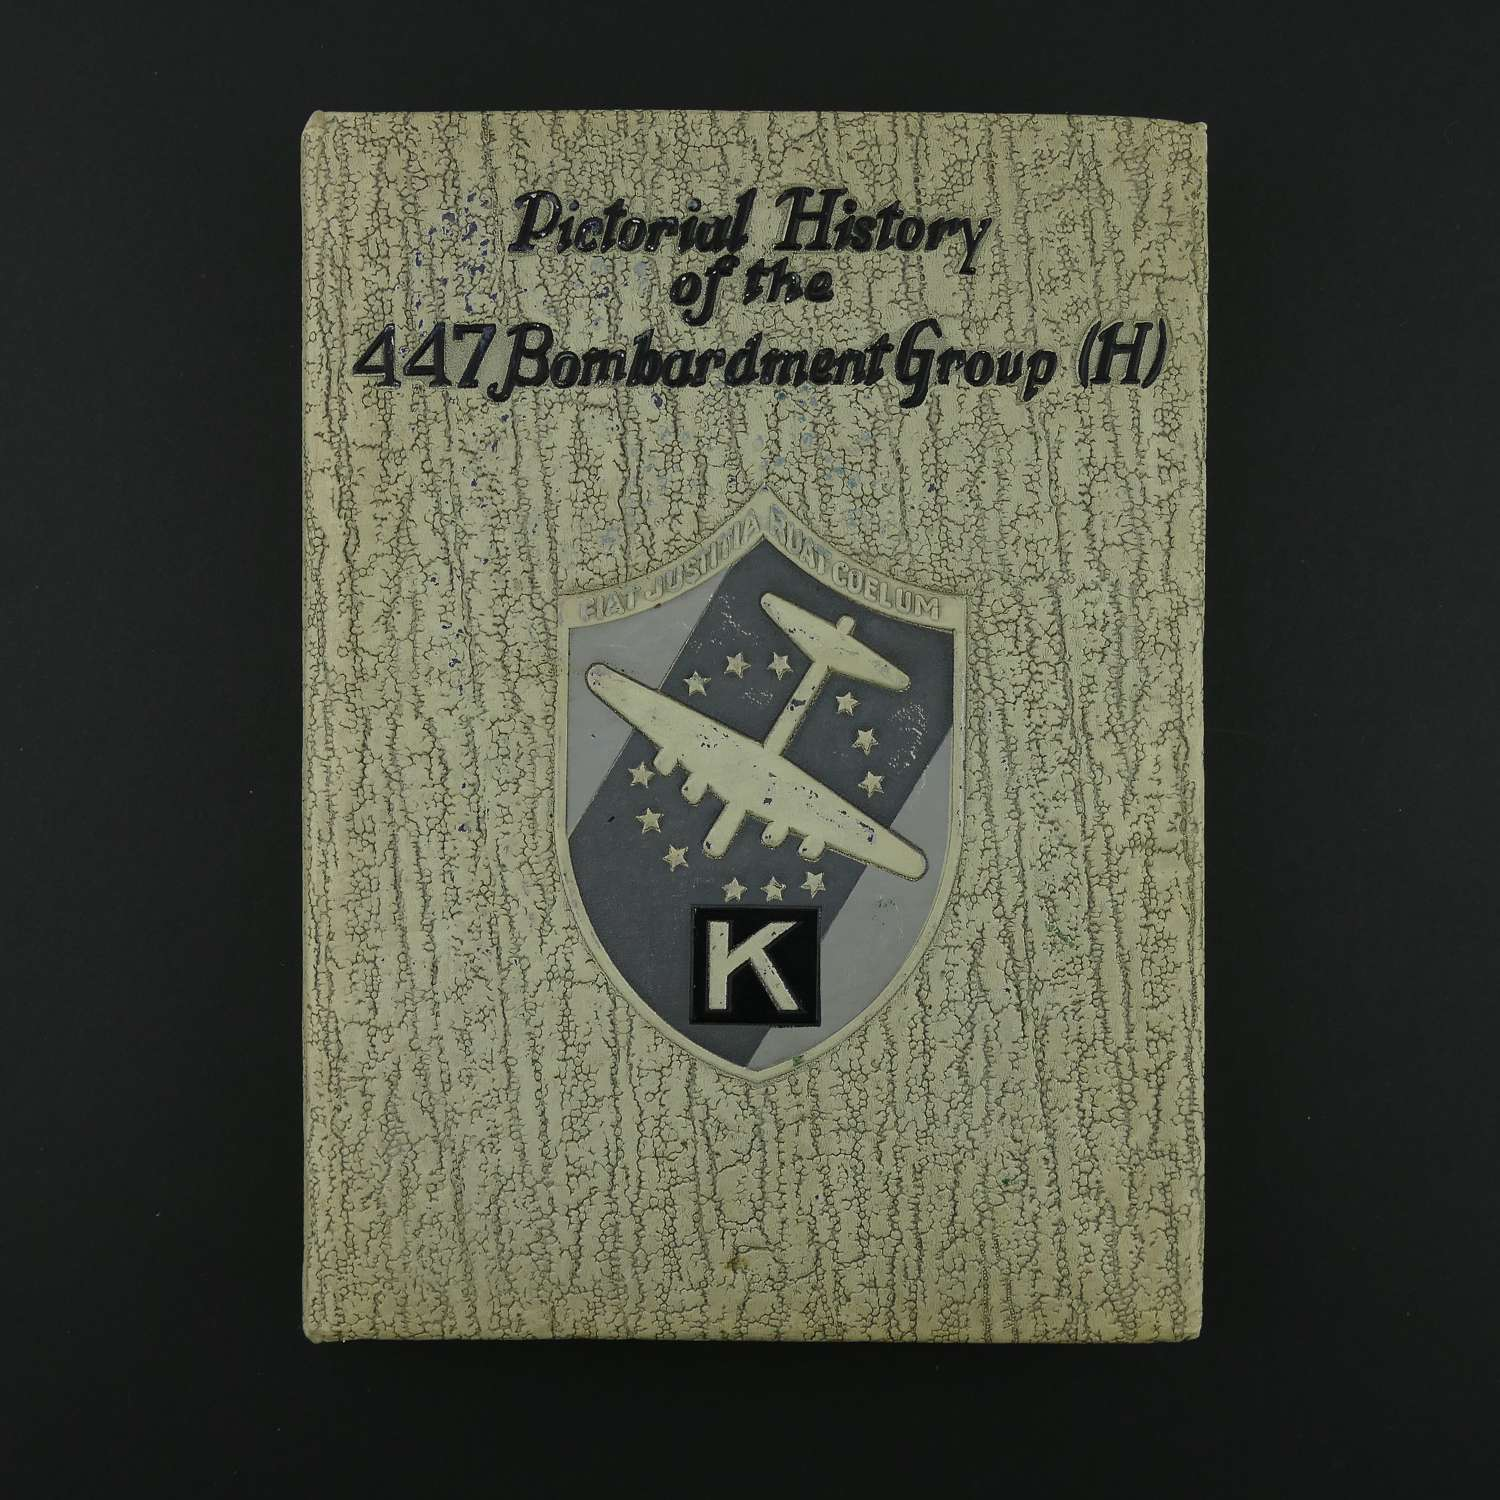 Pictorial History of the 447 Bombardment Group (H)